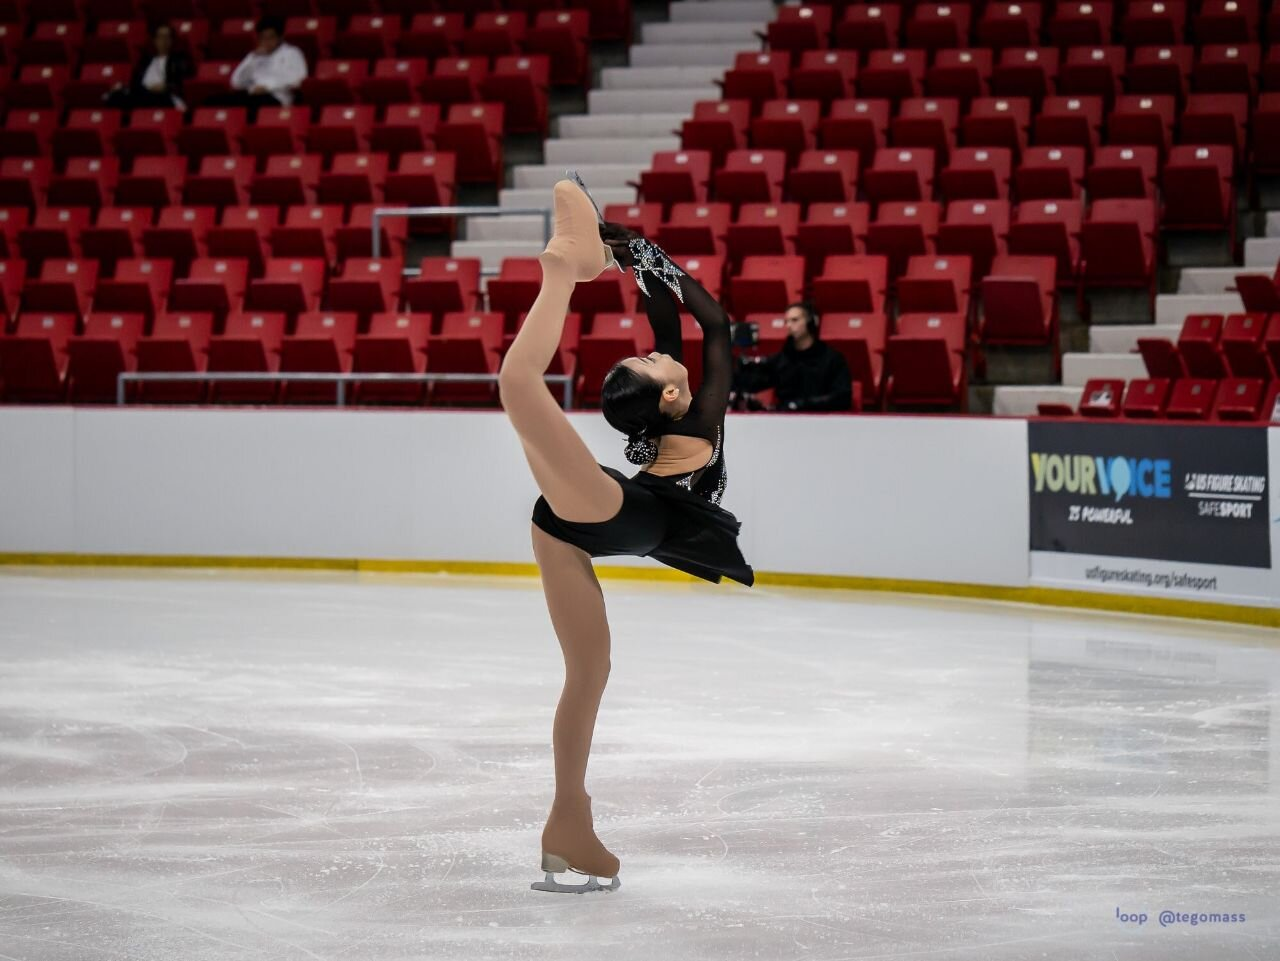 Yeonjeong Park during her Free Program.